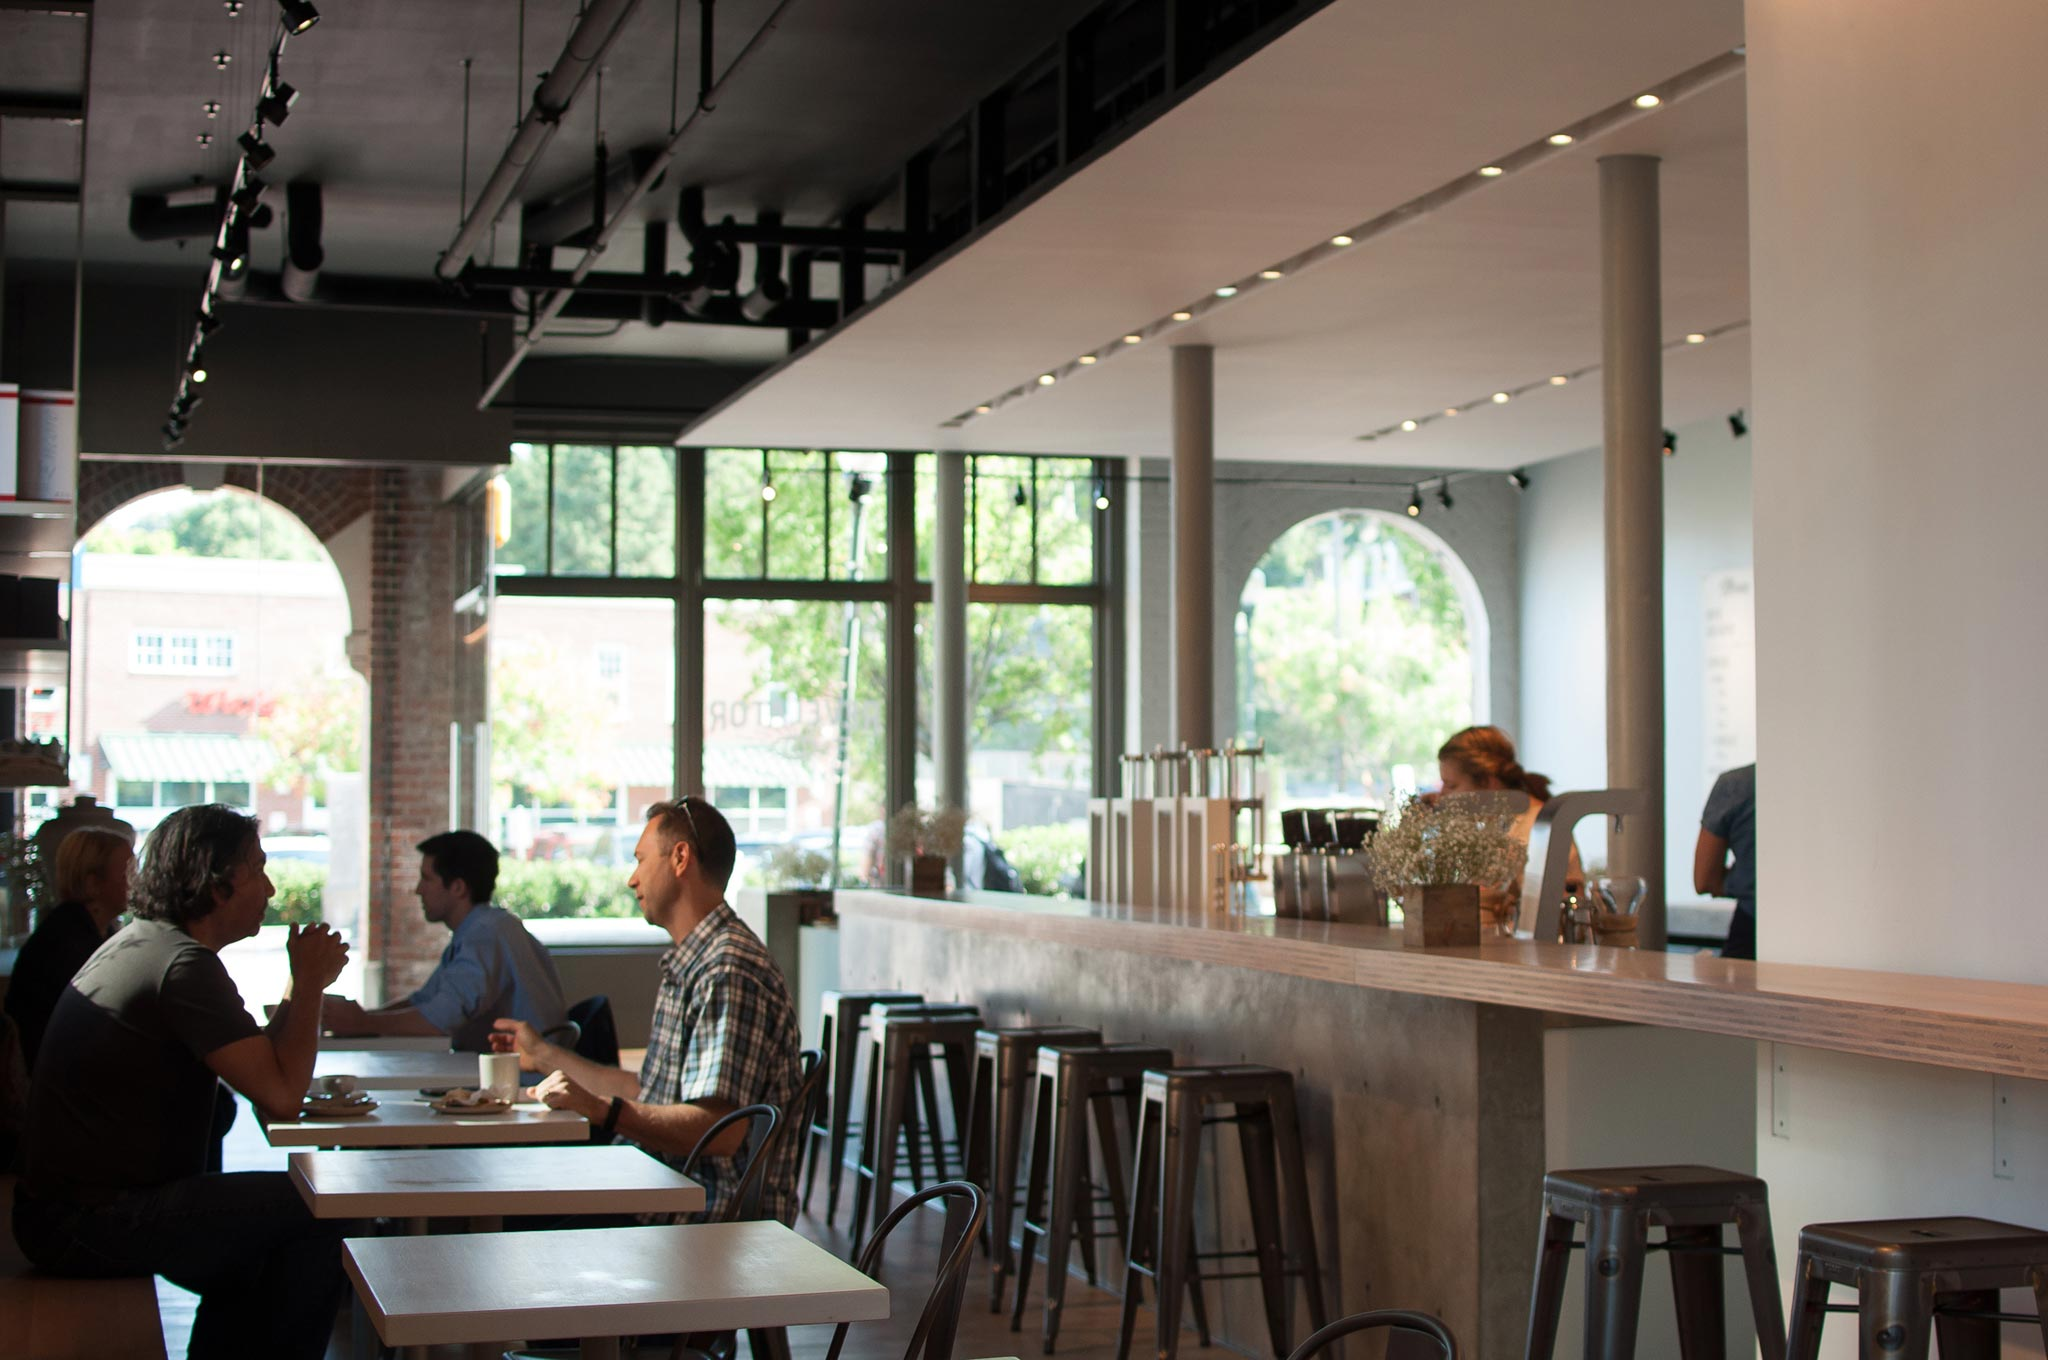 Revelator Chattanooga modern coffee shop inside view of busy coffee shop